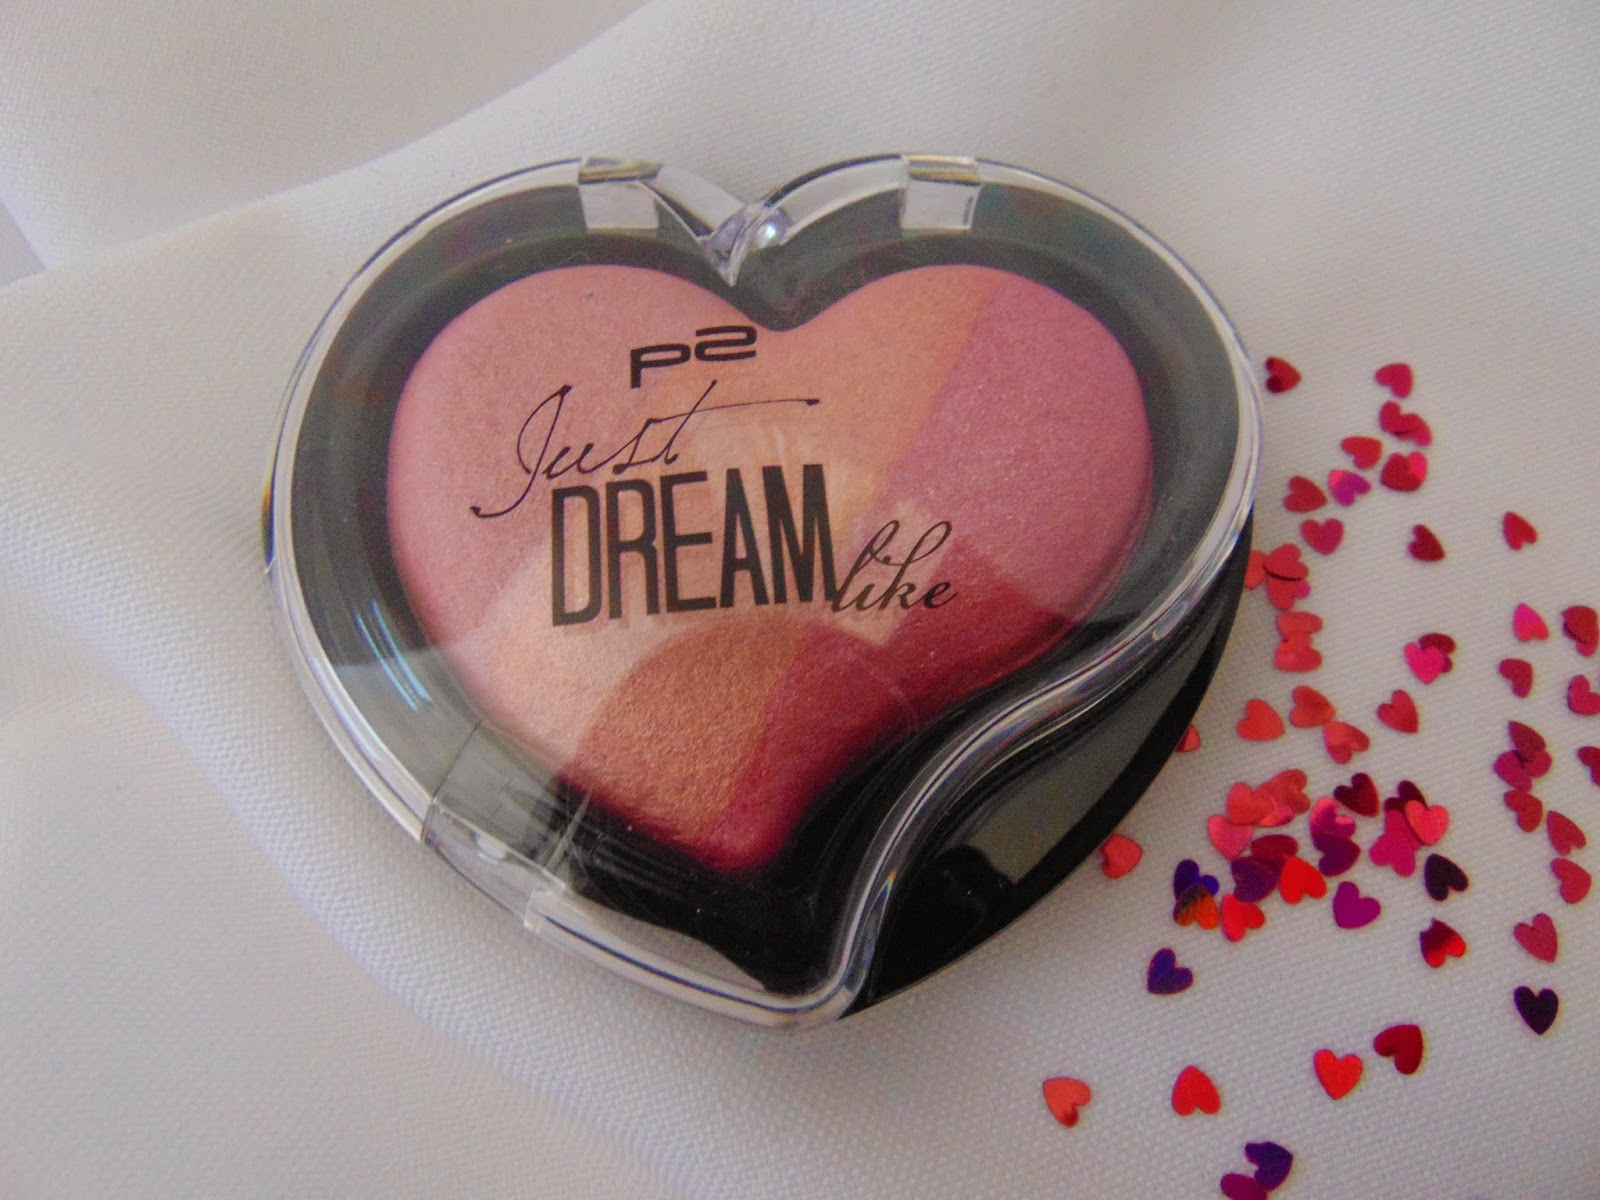 p2 Limited Edition:Just dream like - endless love trio blush - Greatest Wish - www.annitschkasblog.de